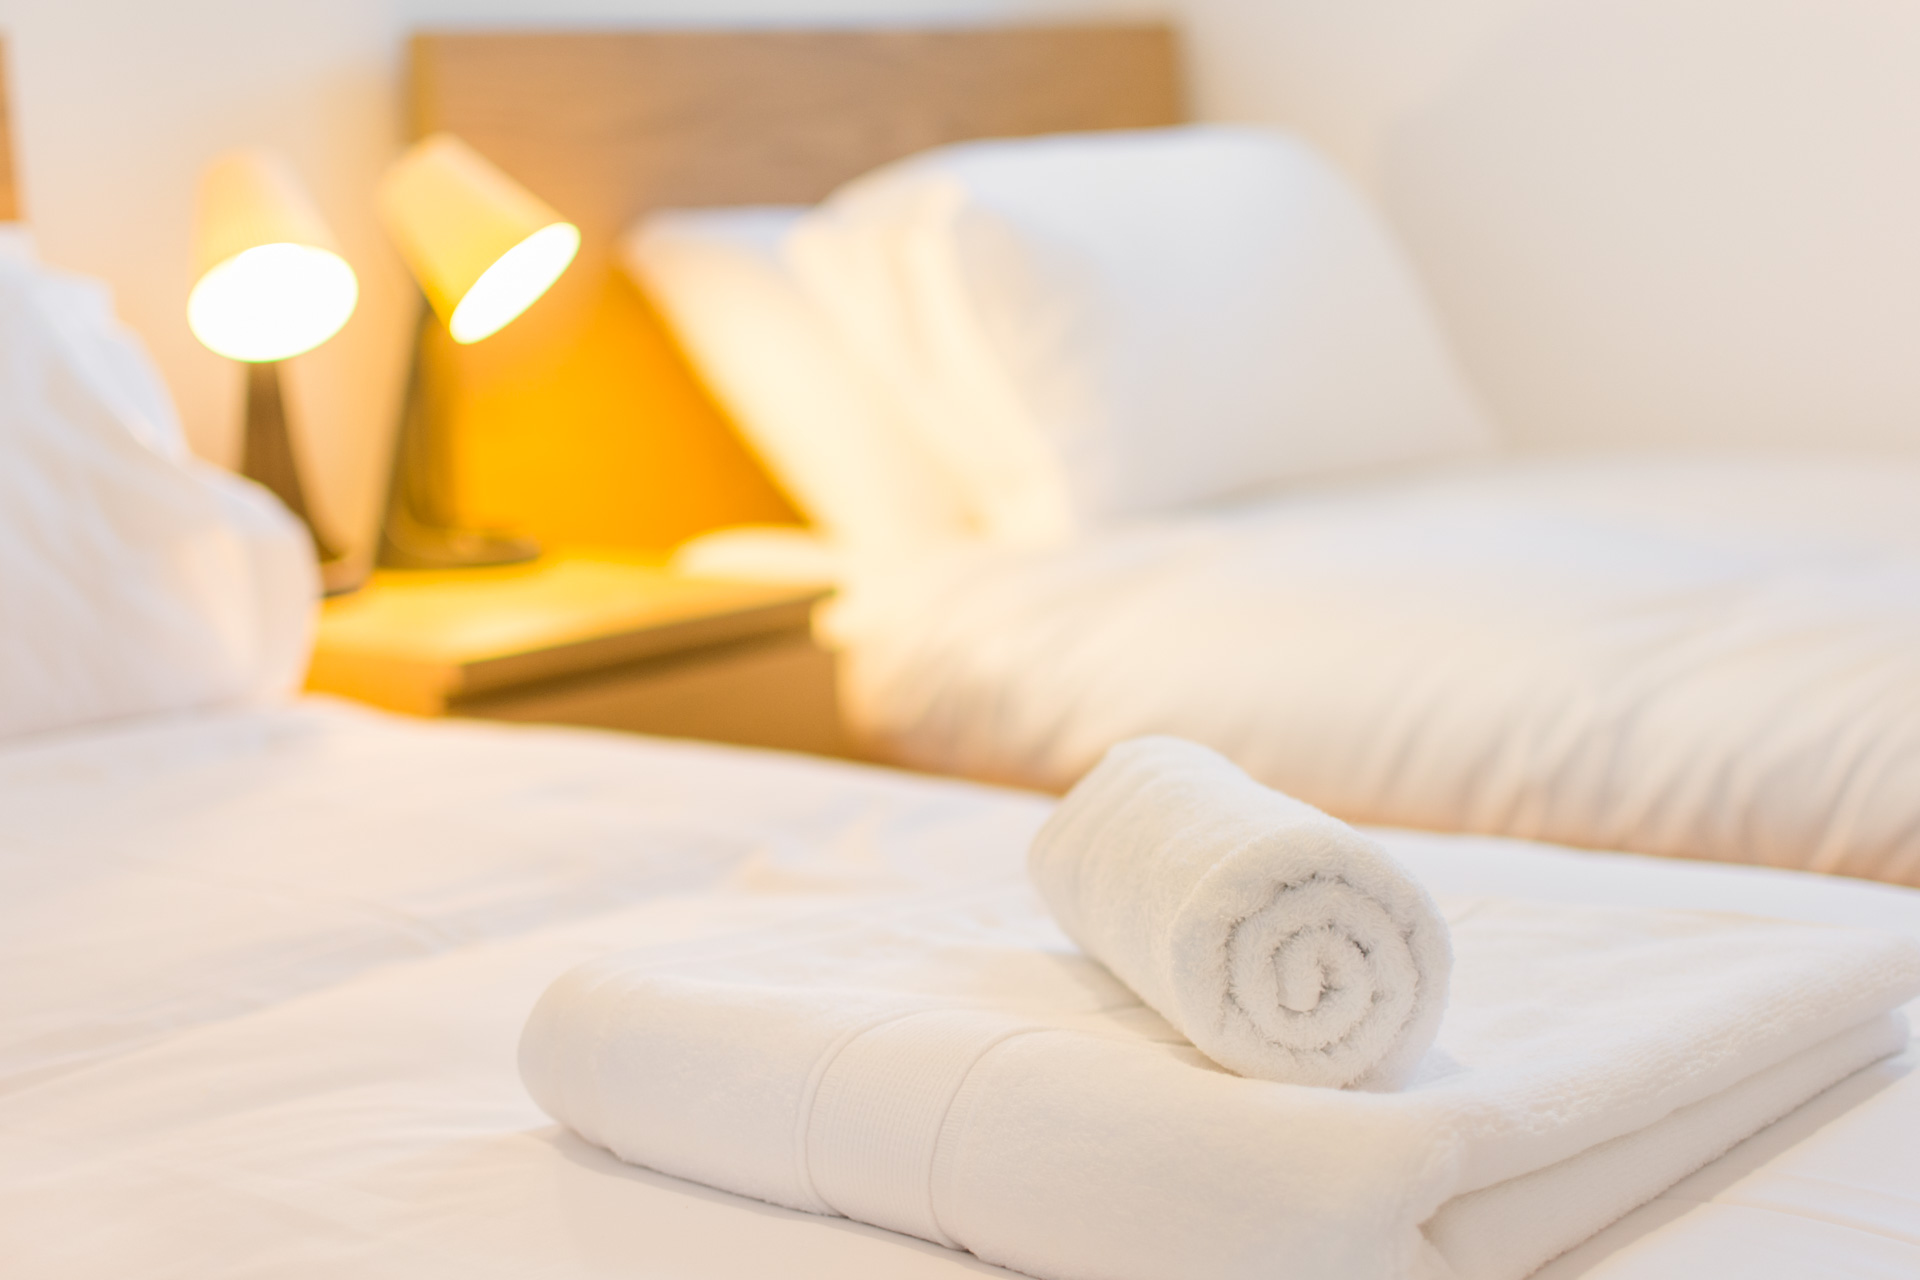 Bath and hand towels provided when staying at Heckingham Park.